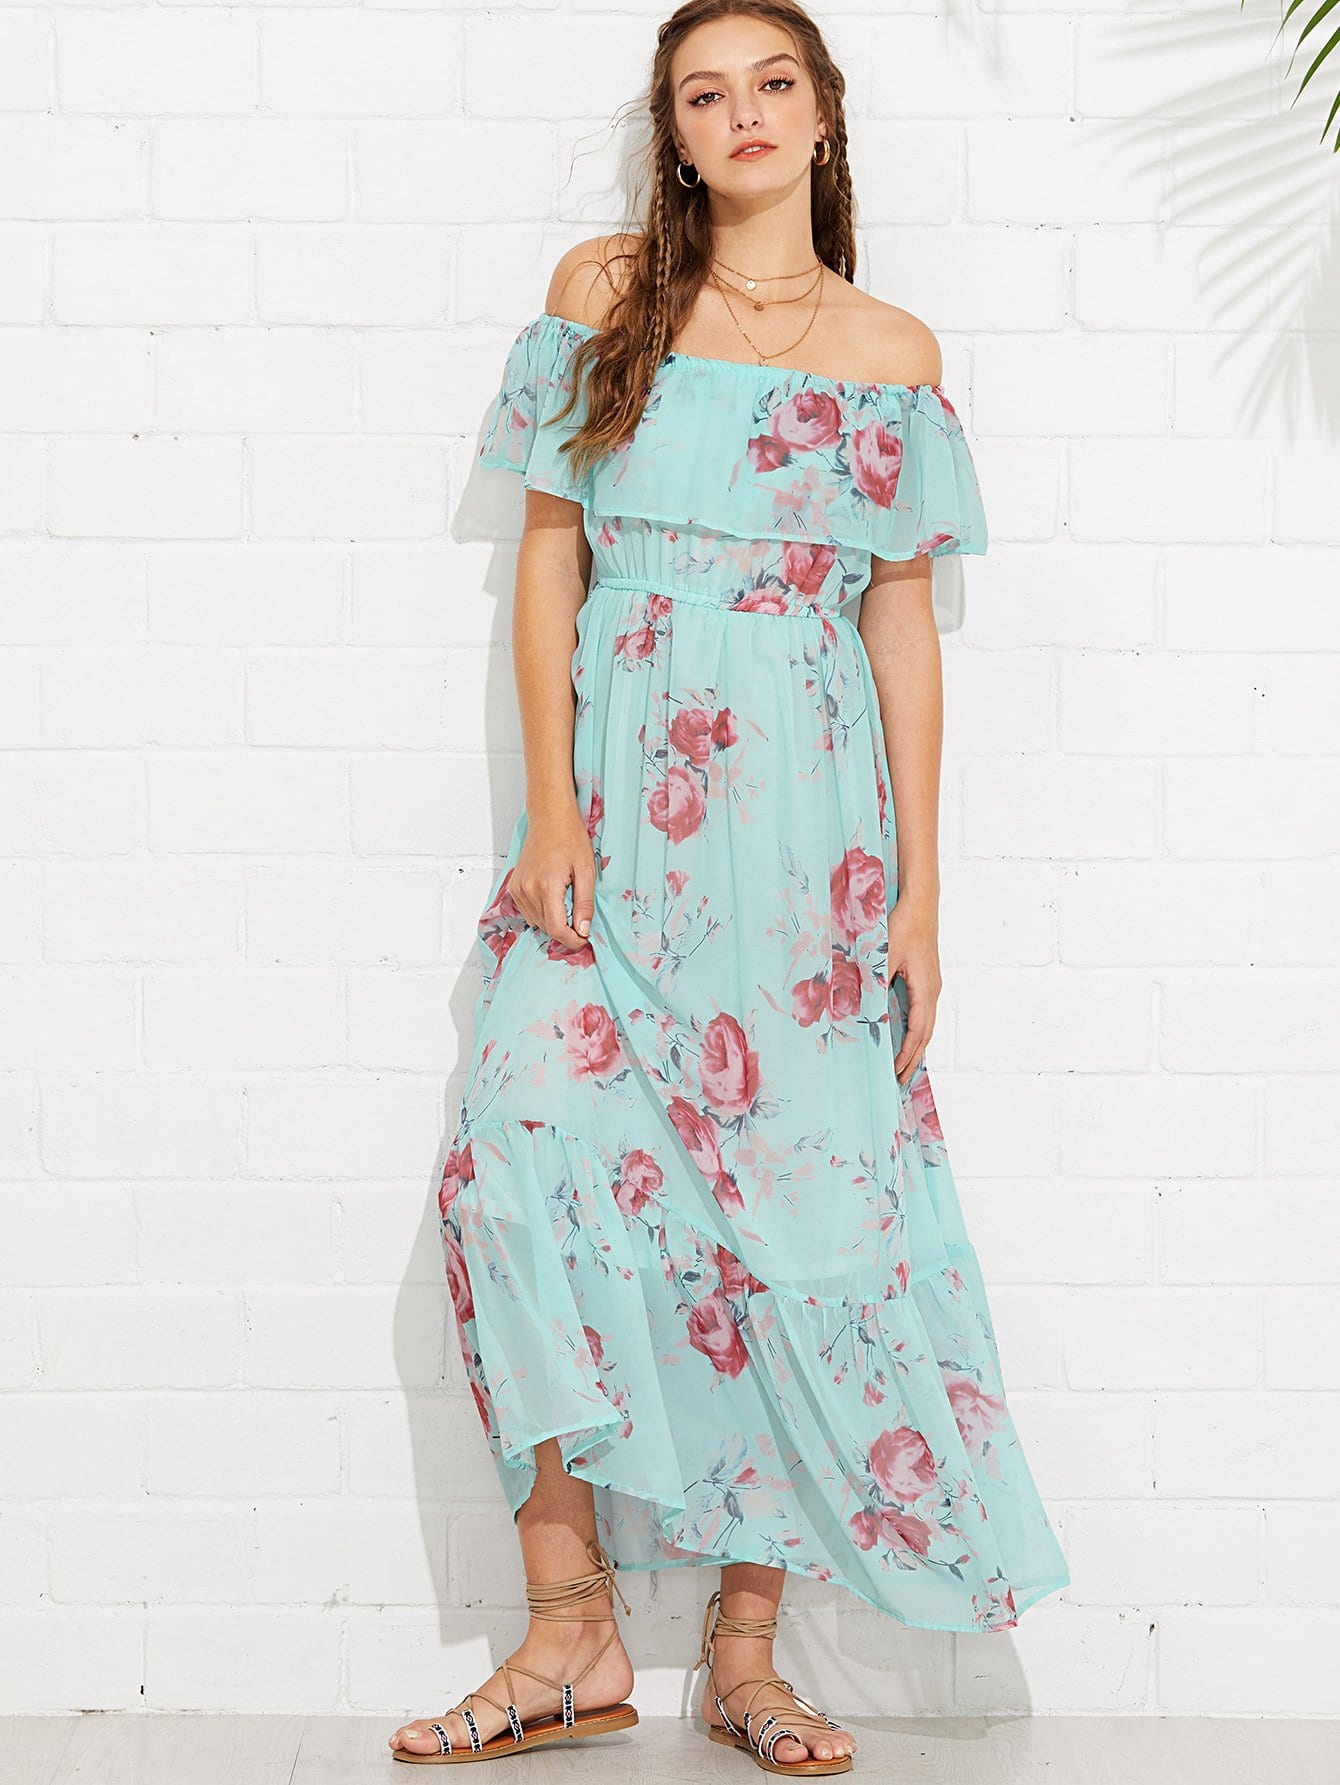 Flounce Off Shoulder Floral Dress flounce off shoulder floral dress